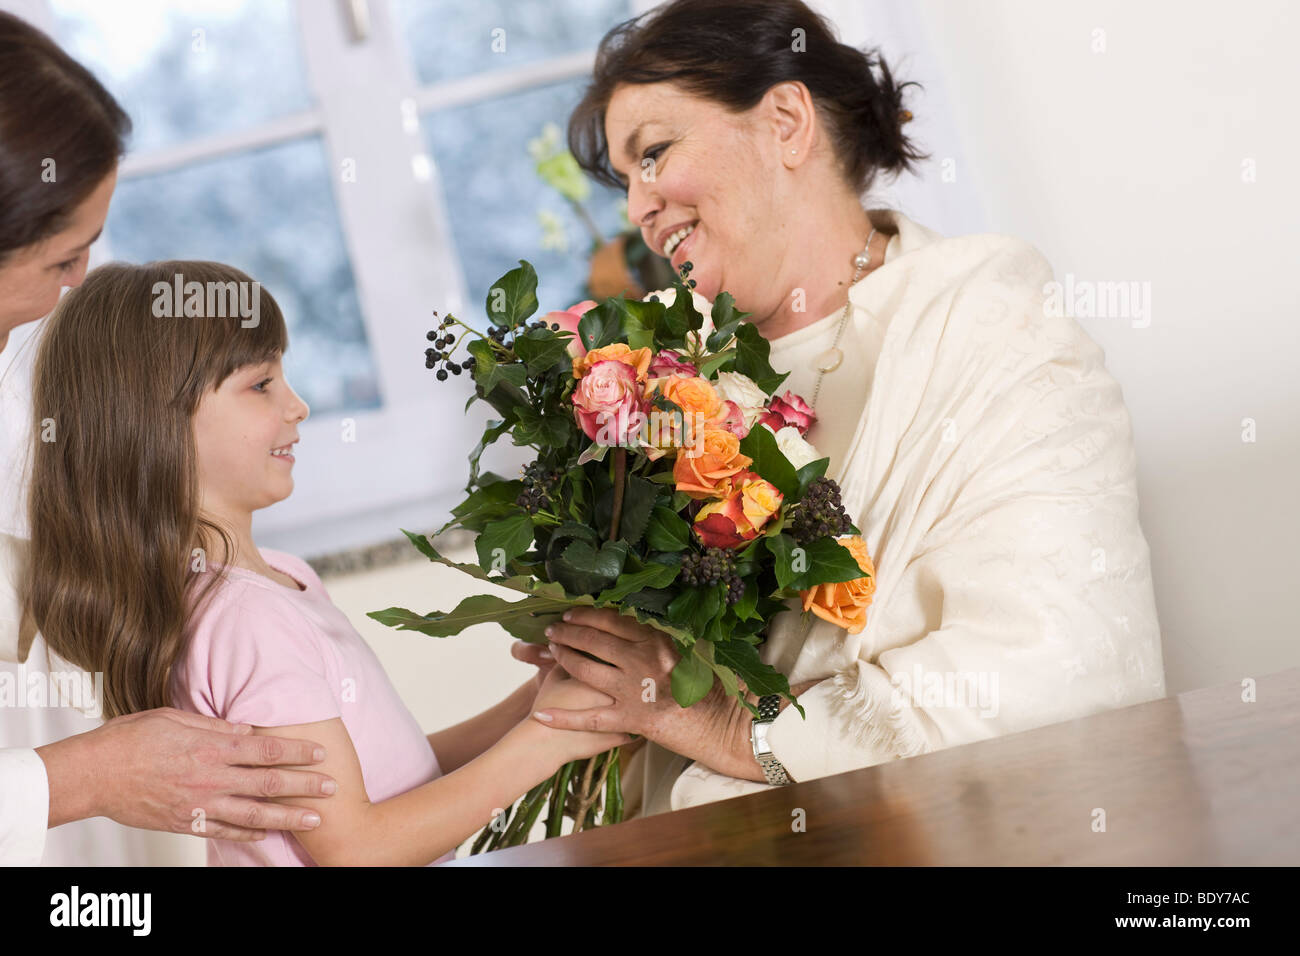 Child giving her grandmother flowers - Stock Image